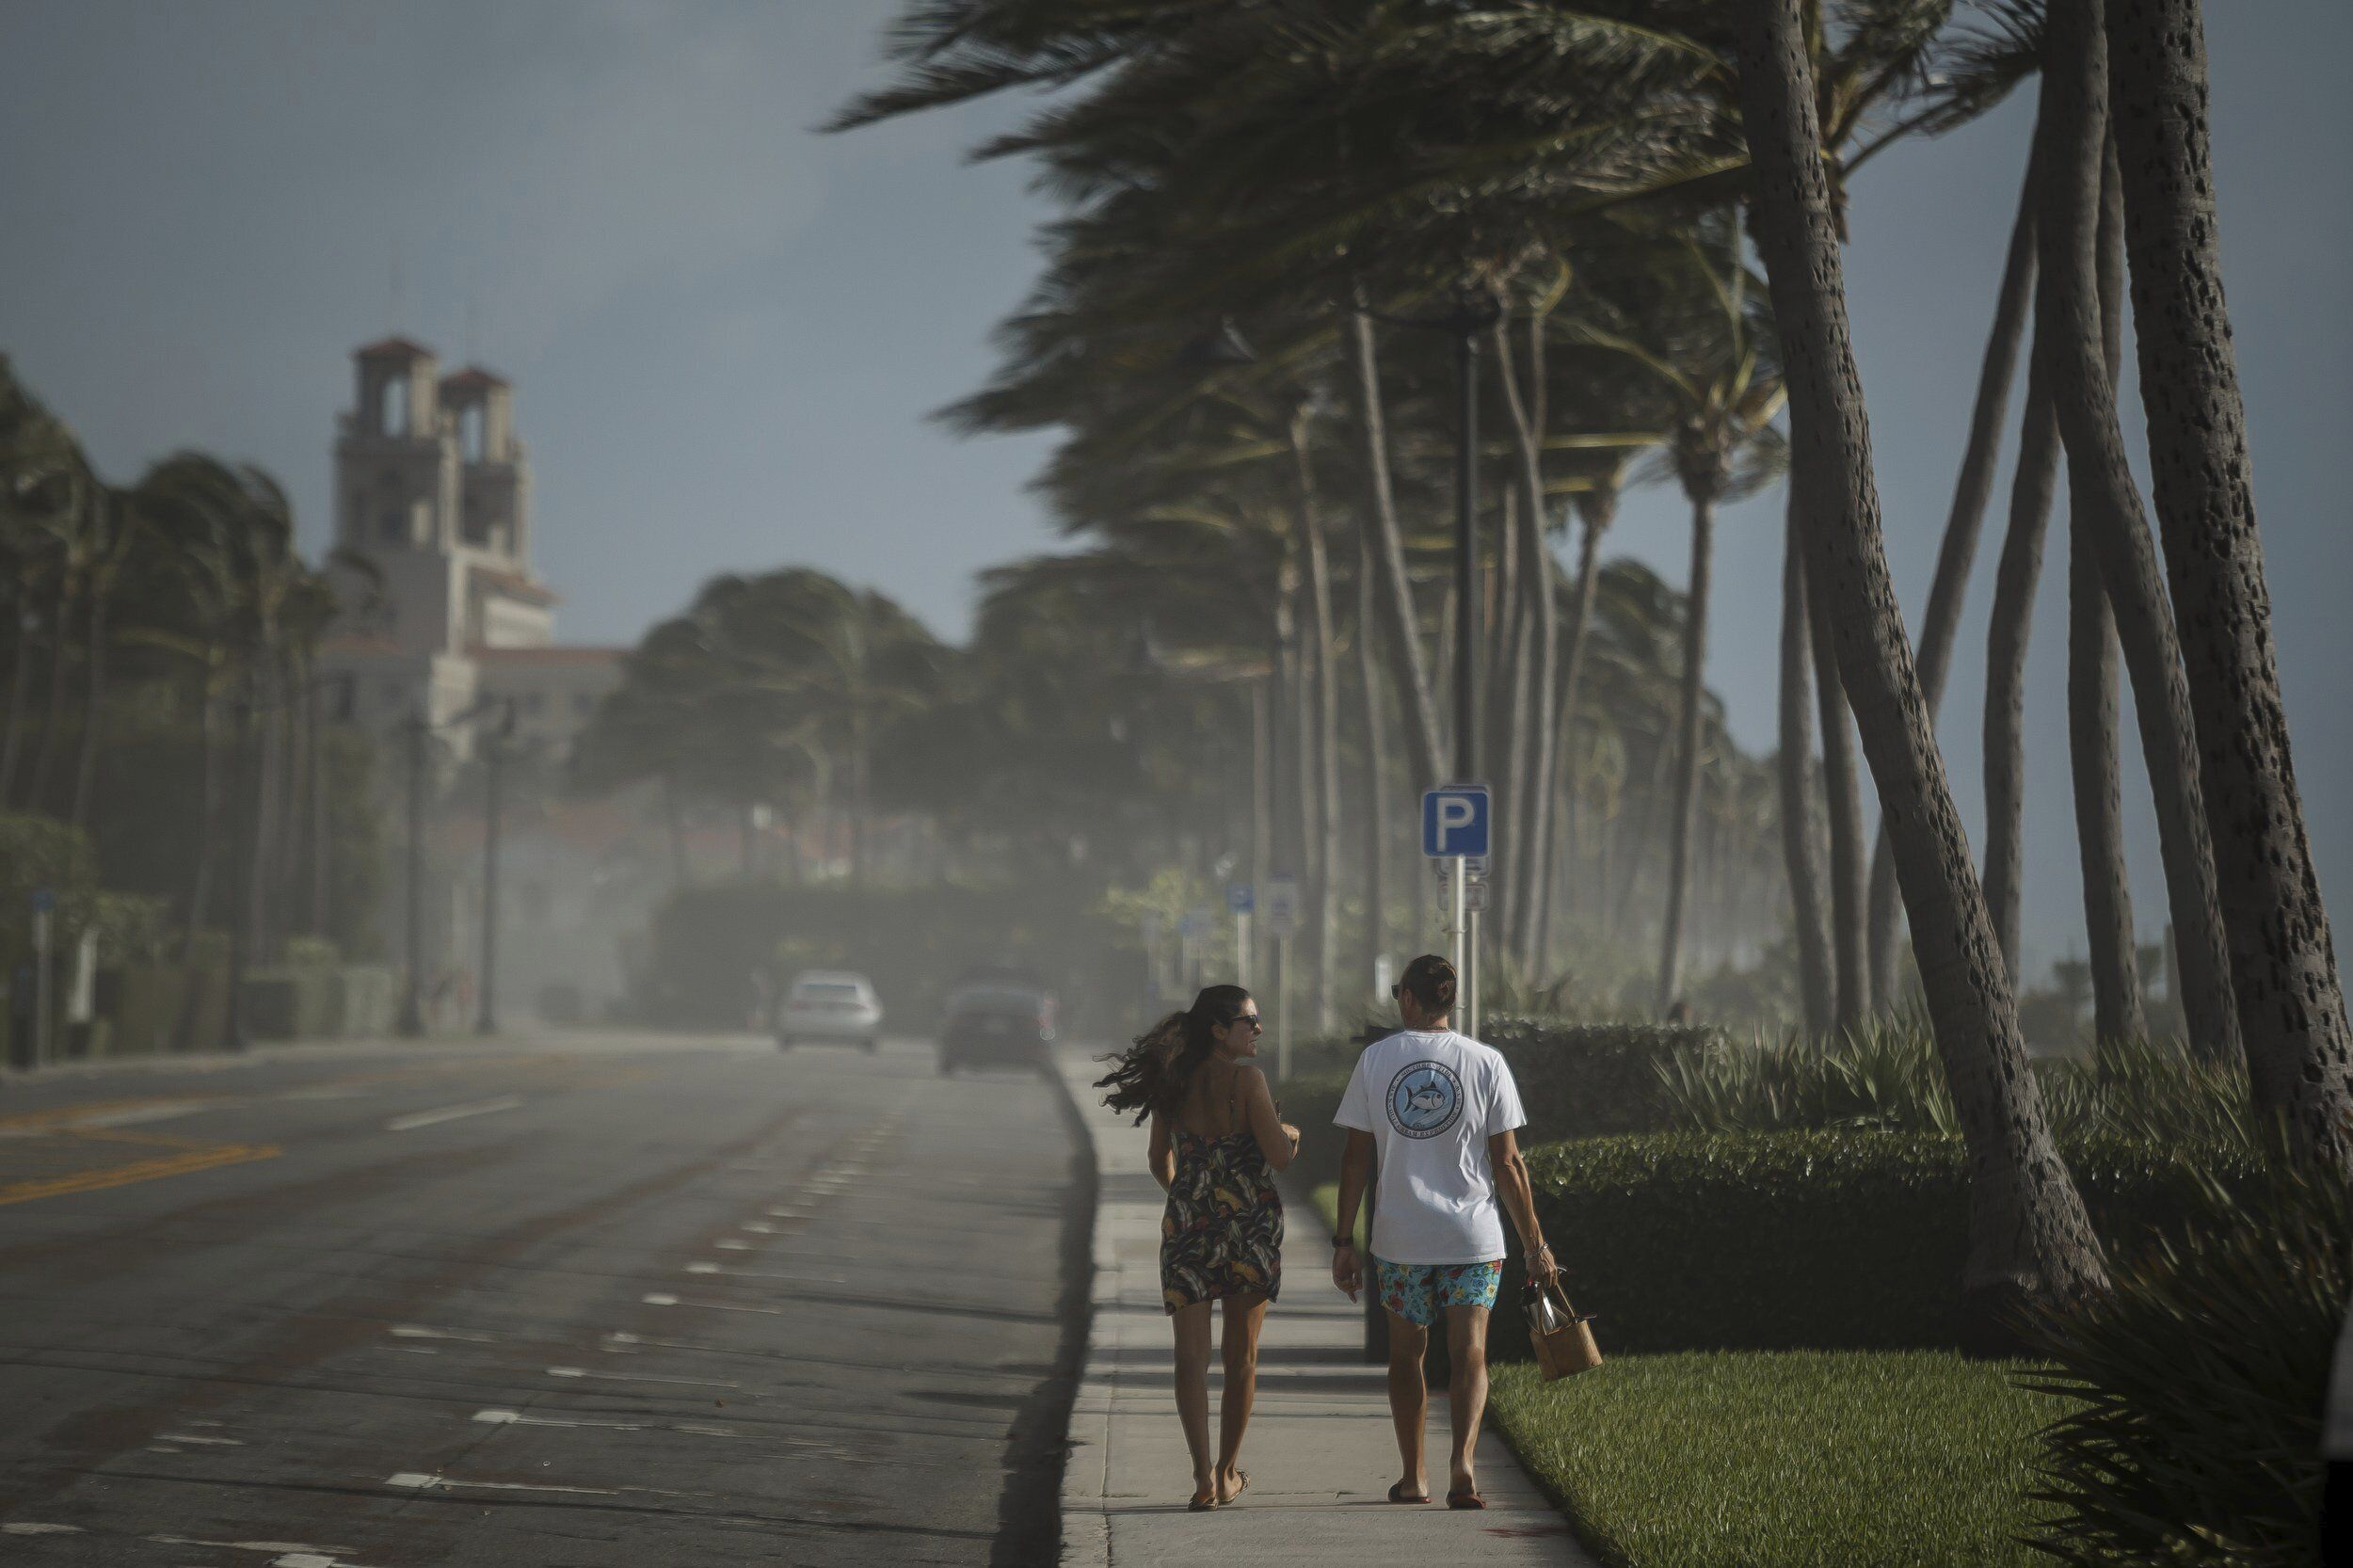 Sea spray, sand and winds sweep across South Ocean Boulevard in Palm Beach, Fla., as Palm Beach County readies for Hurricane Isaias on Saturday, Aug. 1, 2020.   Isaias snapped trees and knocked out power as it blew through the Bahamas on Saturday and churned toward the Florida coast, where it is threatening to complicate efforts to contain the coronavirus in a hot spot. (Thomas Cordy/The Palm Beach Post via AP)